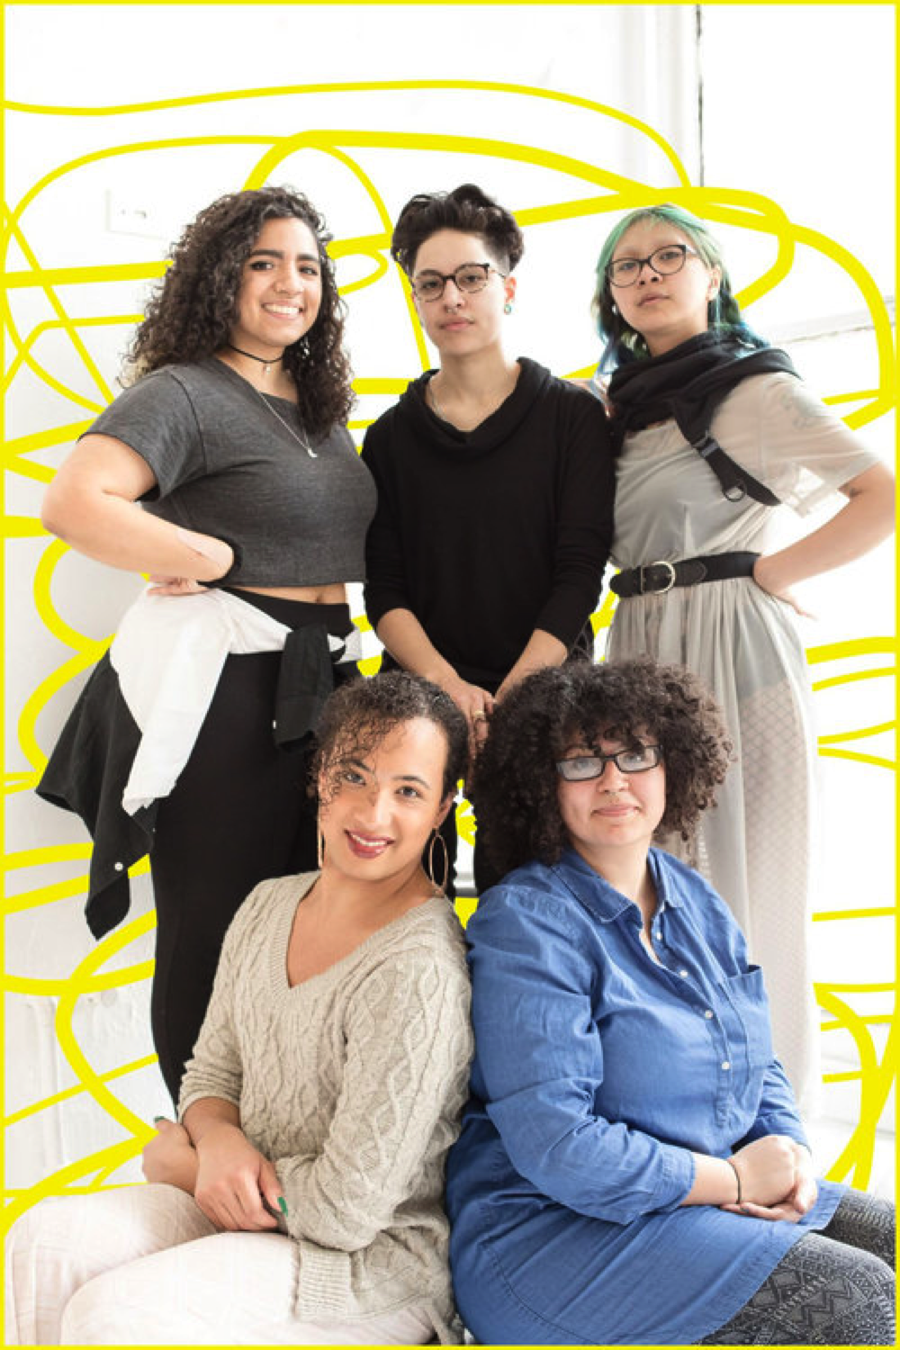 Photo Courtesy of Corkscrew Festival webpage. Clockwise from top left: playwright Juliany Taveras, director Manny Rivera, stage manager Rafael Tawasil, dramaturg/actor Jackie Torres, choreographer Ianne Fields Stewart